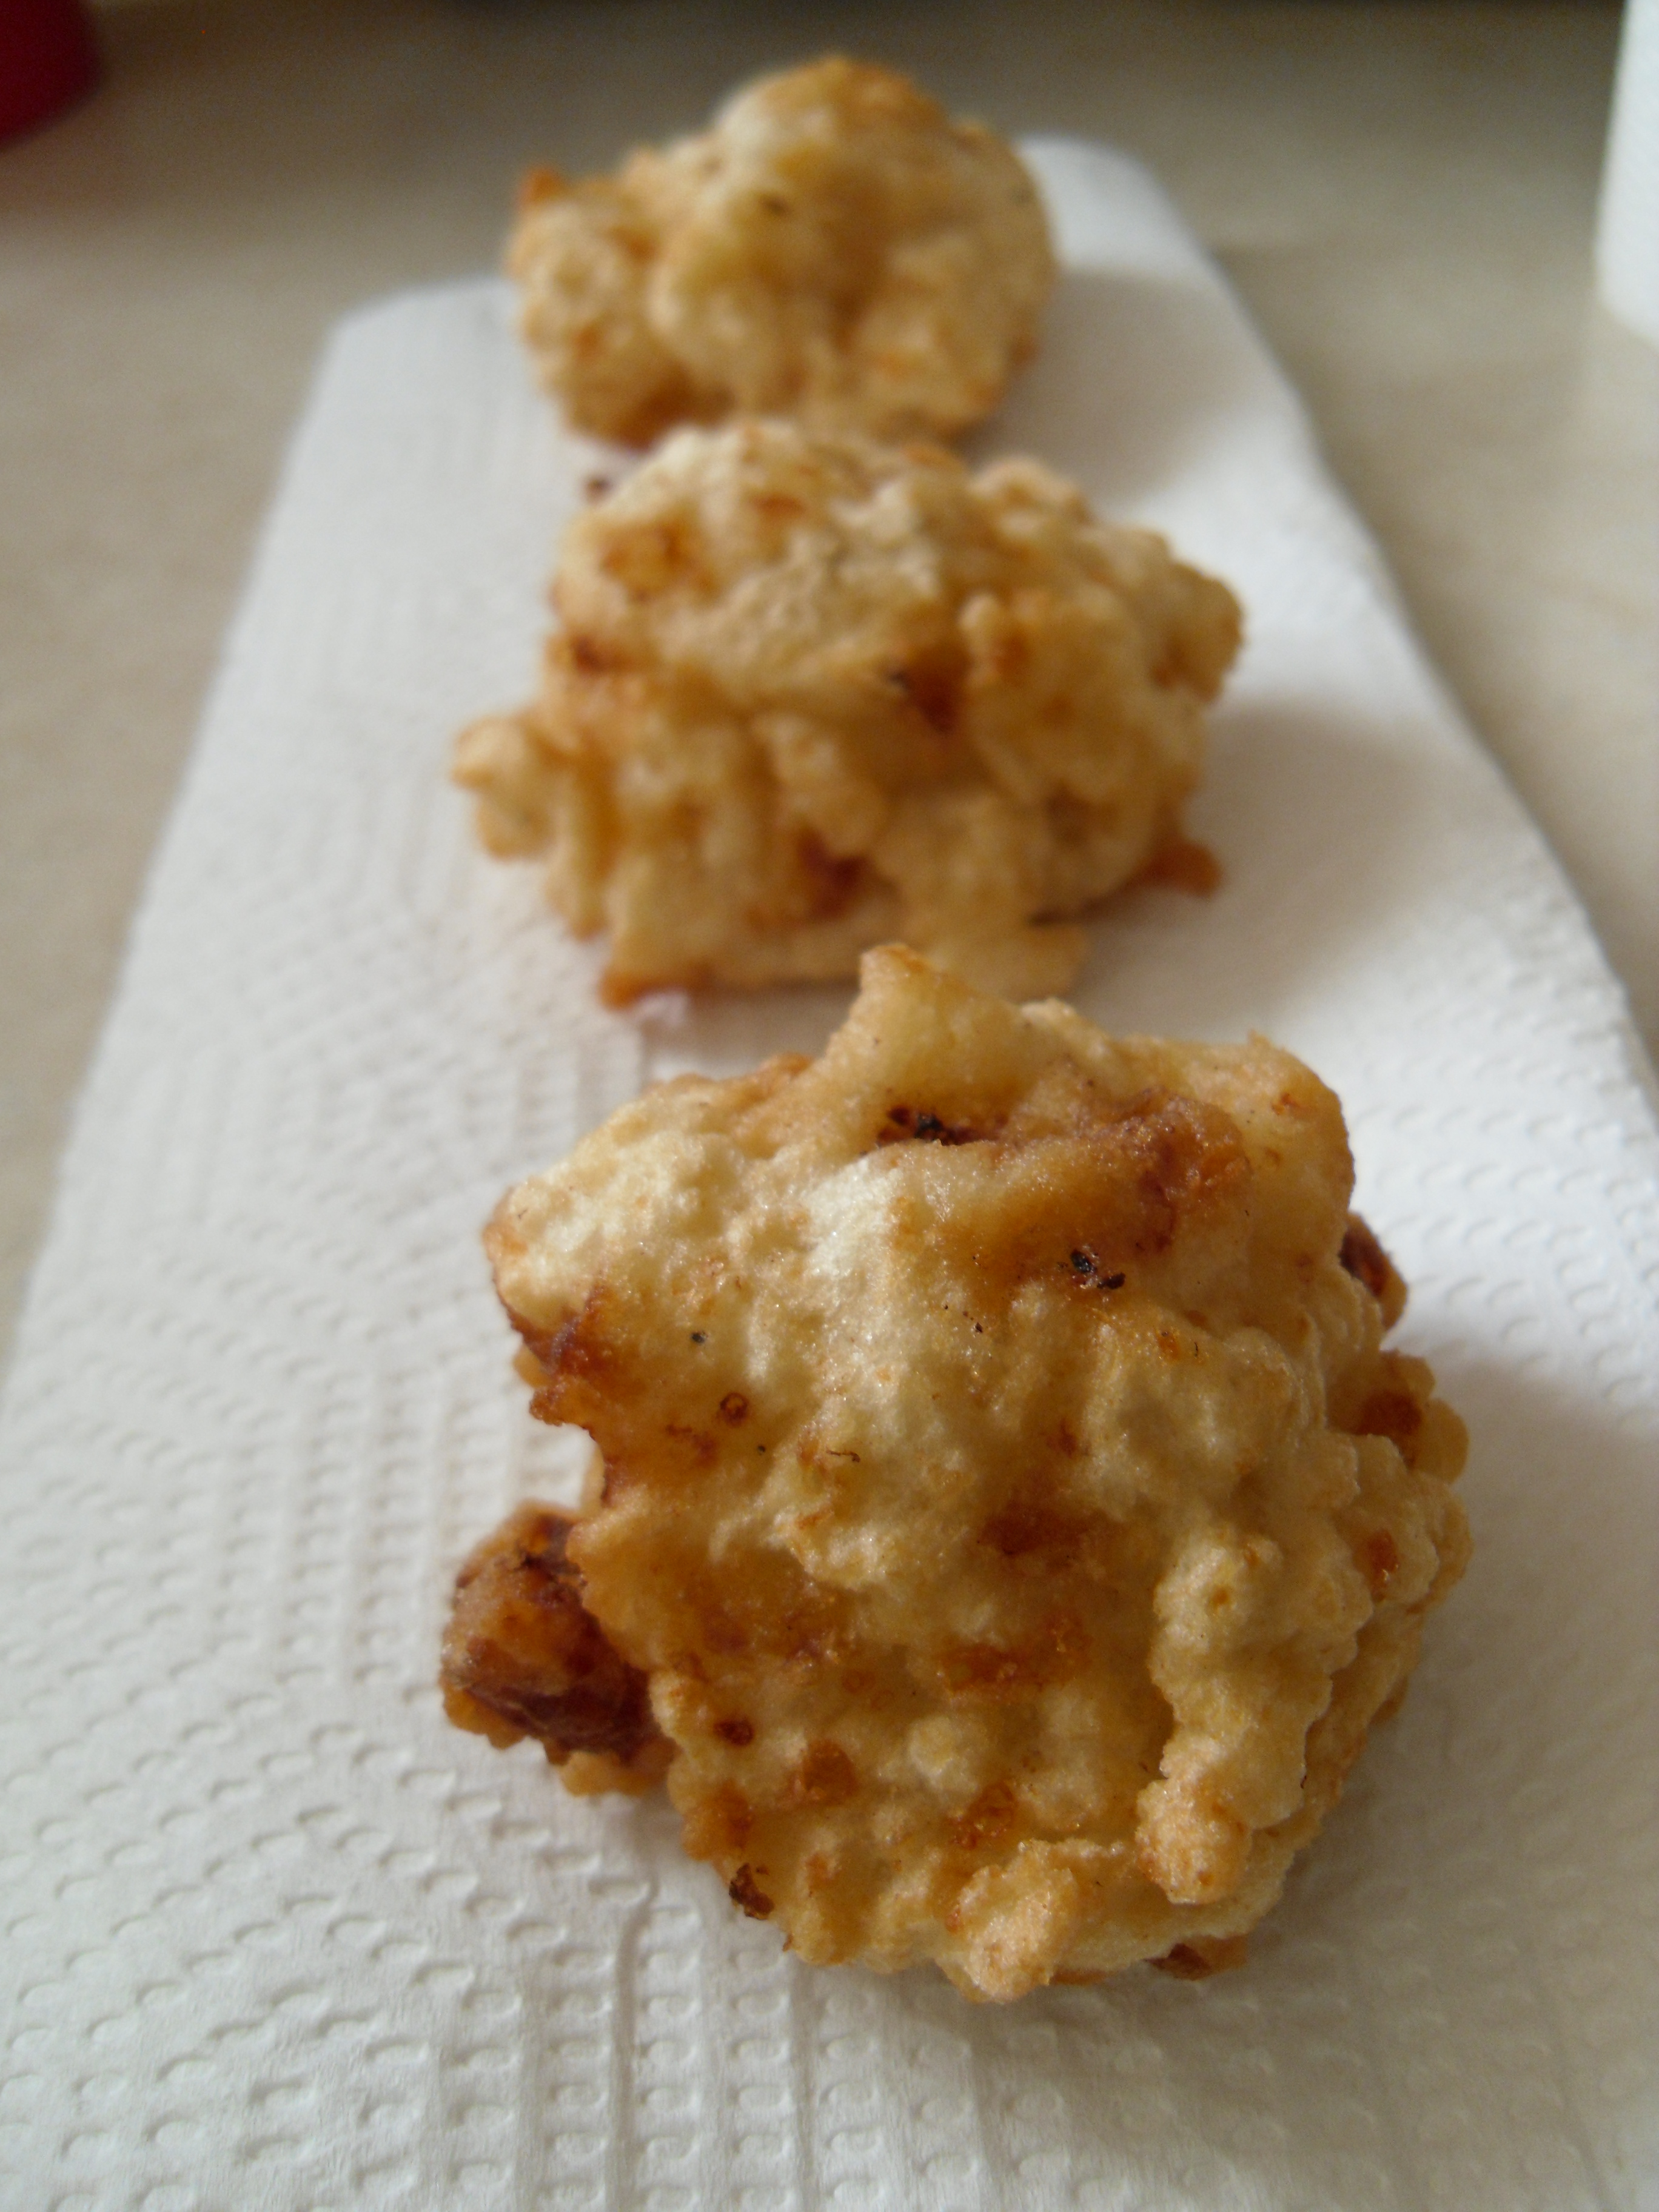 Picture of Frying the Mac&Cheese Balls